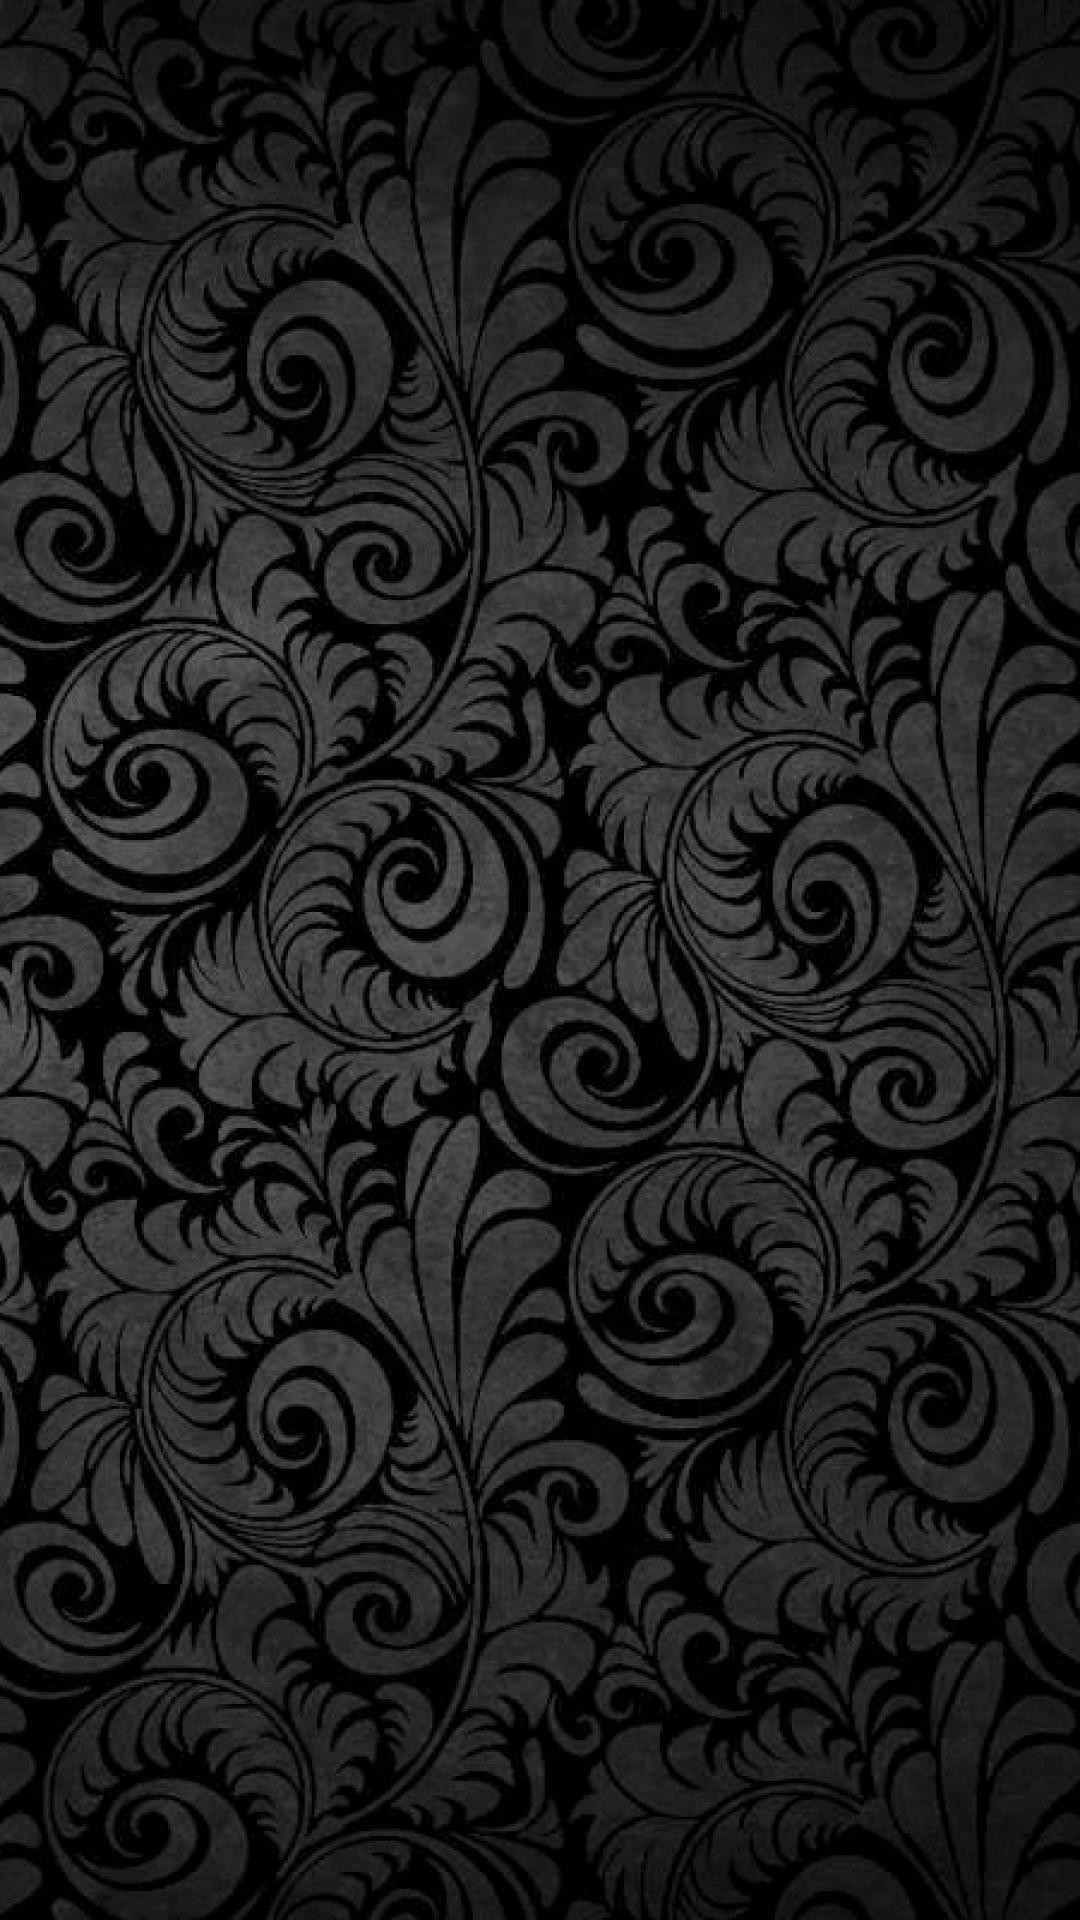 black wallpaper for android there-she-goes-floral-pattern